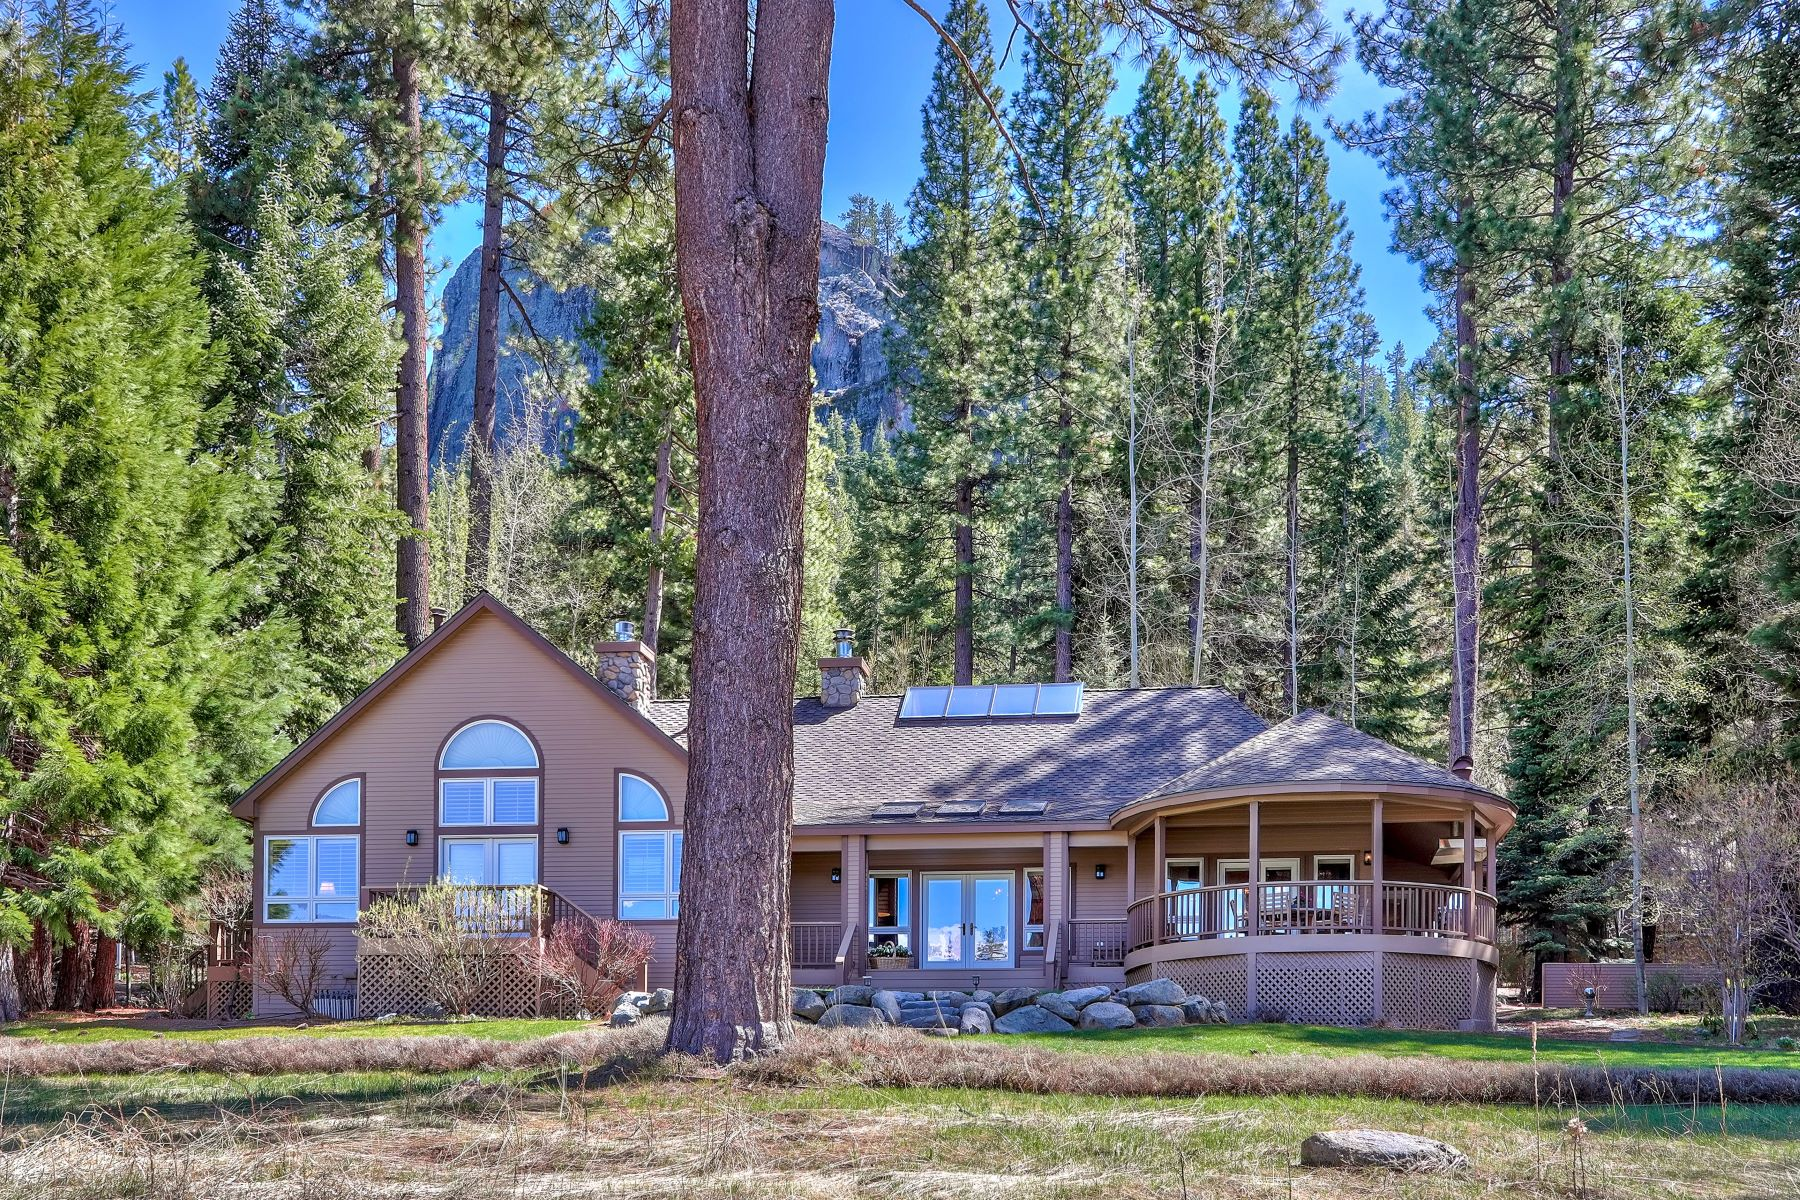 Additional photo for property listing at Peaceful setting in Historic Glenbrook 215 South Meadow Road Glenbrook, Nevada 89413 United States